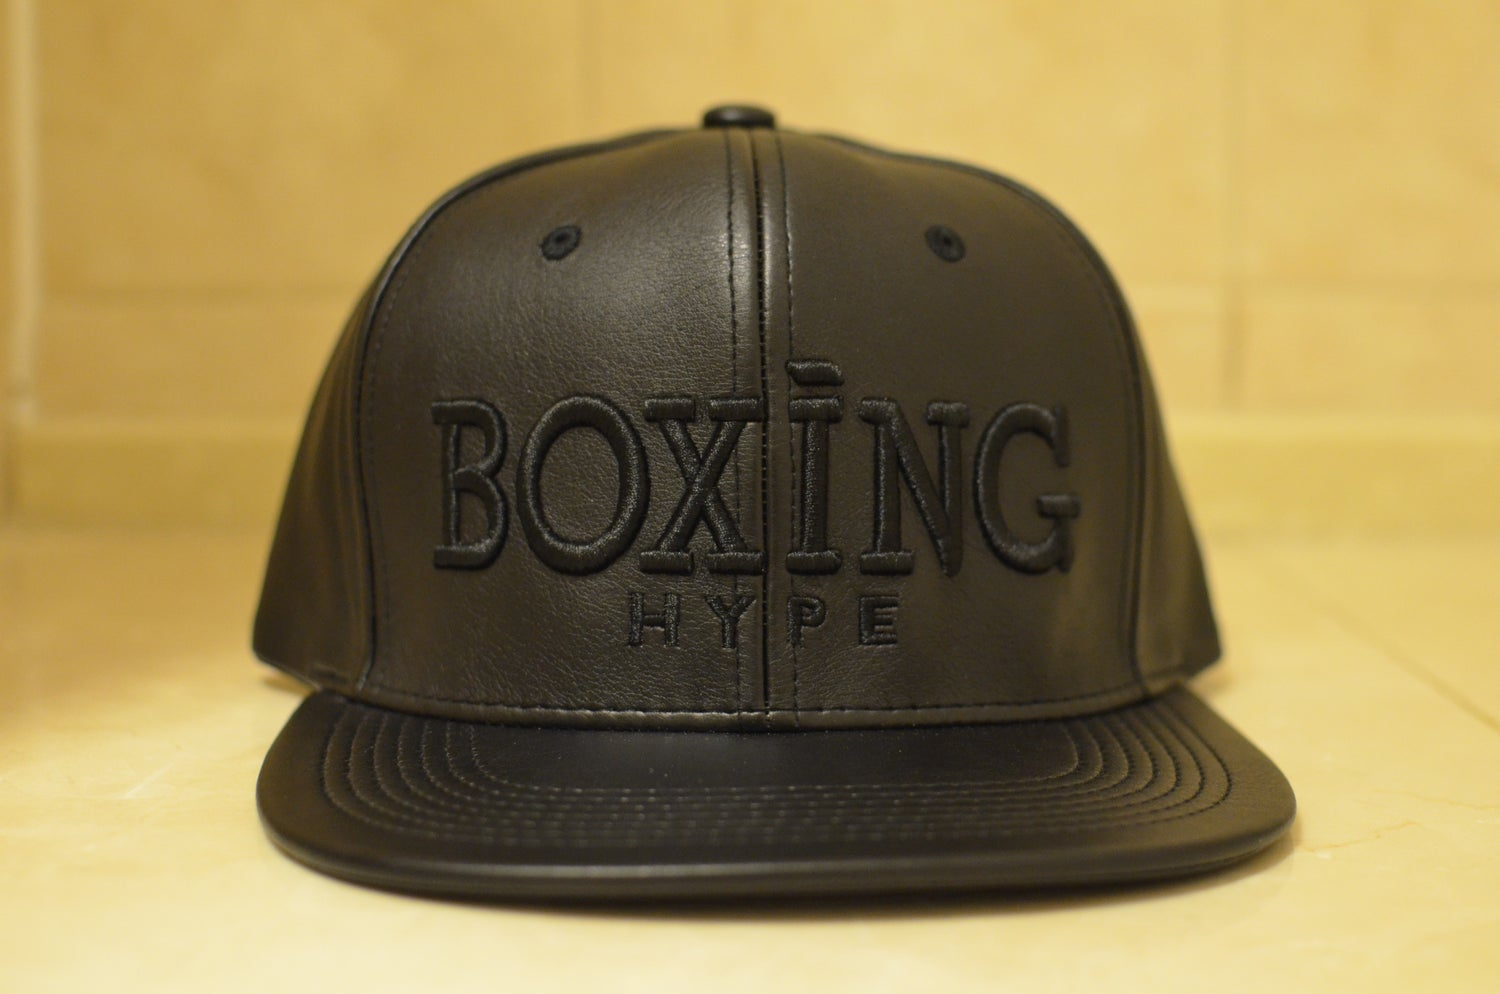 Image of Black on Black leather Snapbacks